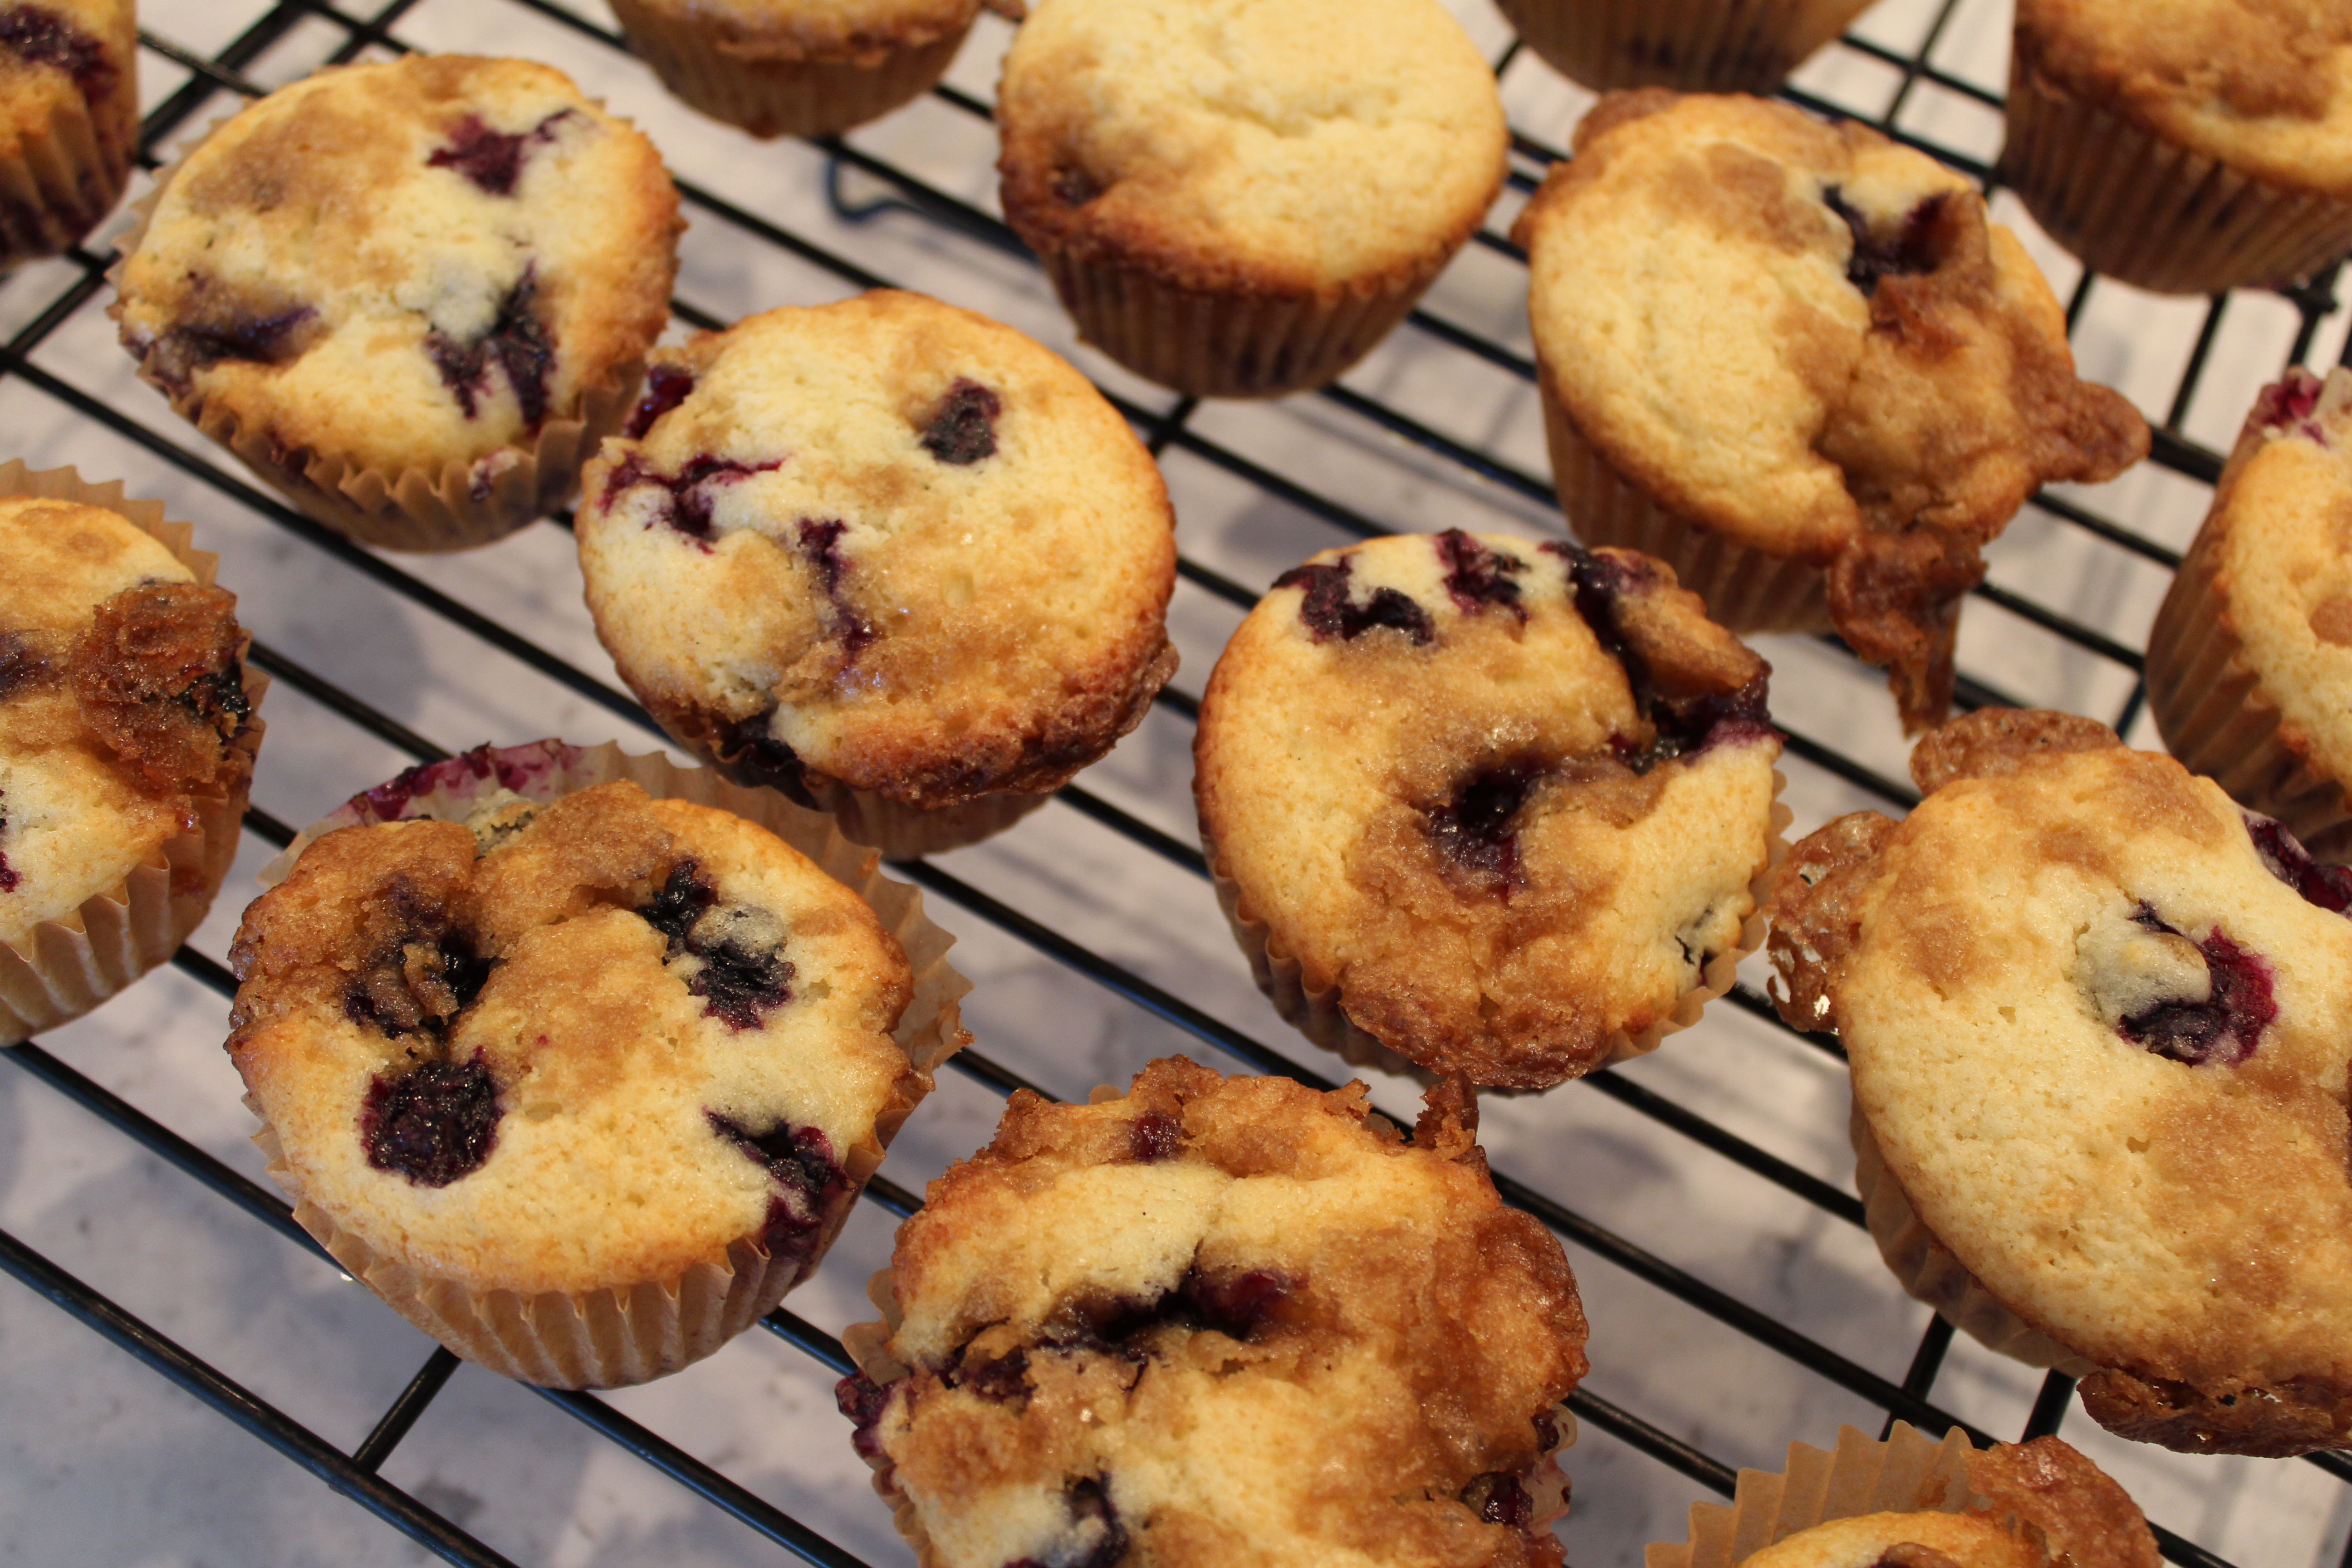 Pumpkin and Lemon Blueberry Muffins: The Stories You Don't Share